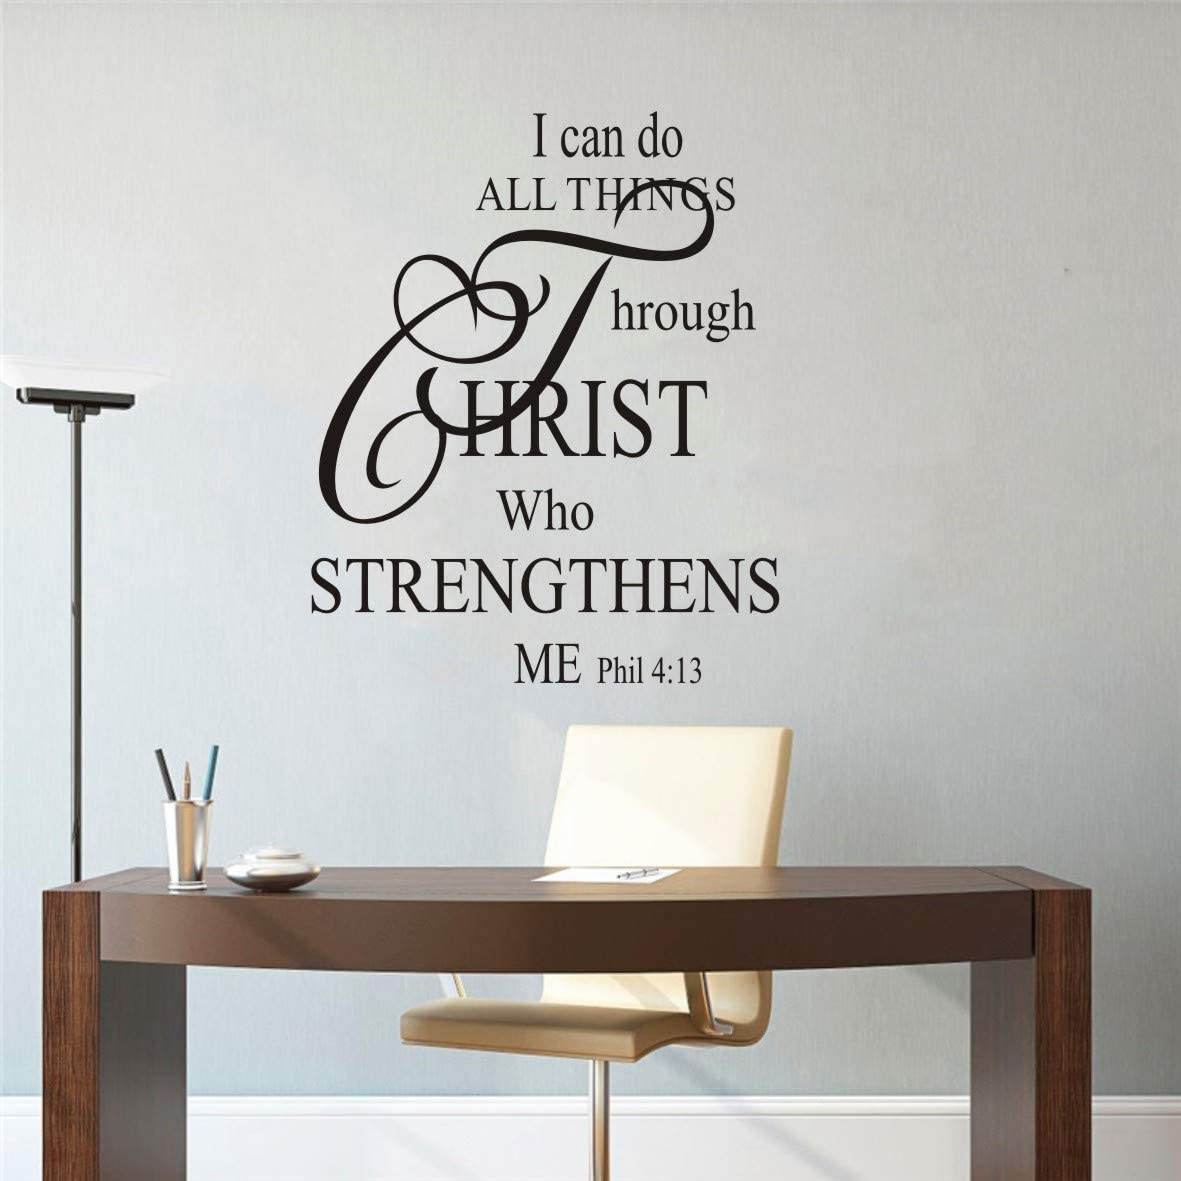 Vinyl Bible Verse Wall Sticker Joshua Psalm Wall Art Inspirational Quotes and Saying Home Decor Mural Sticker (AY1433 I can do All Things 42x55cm)